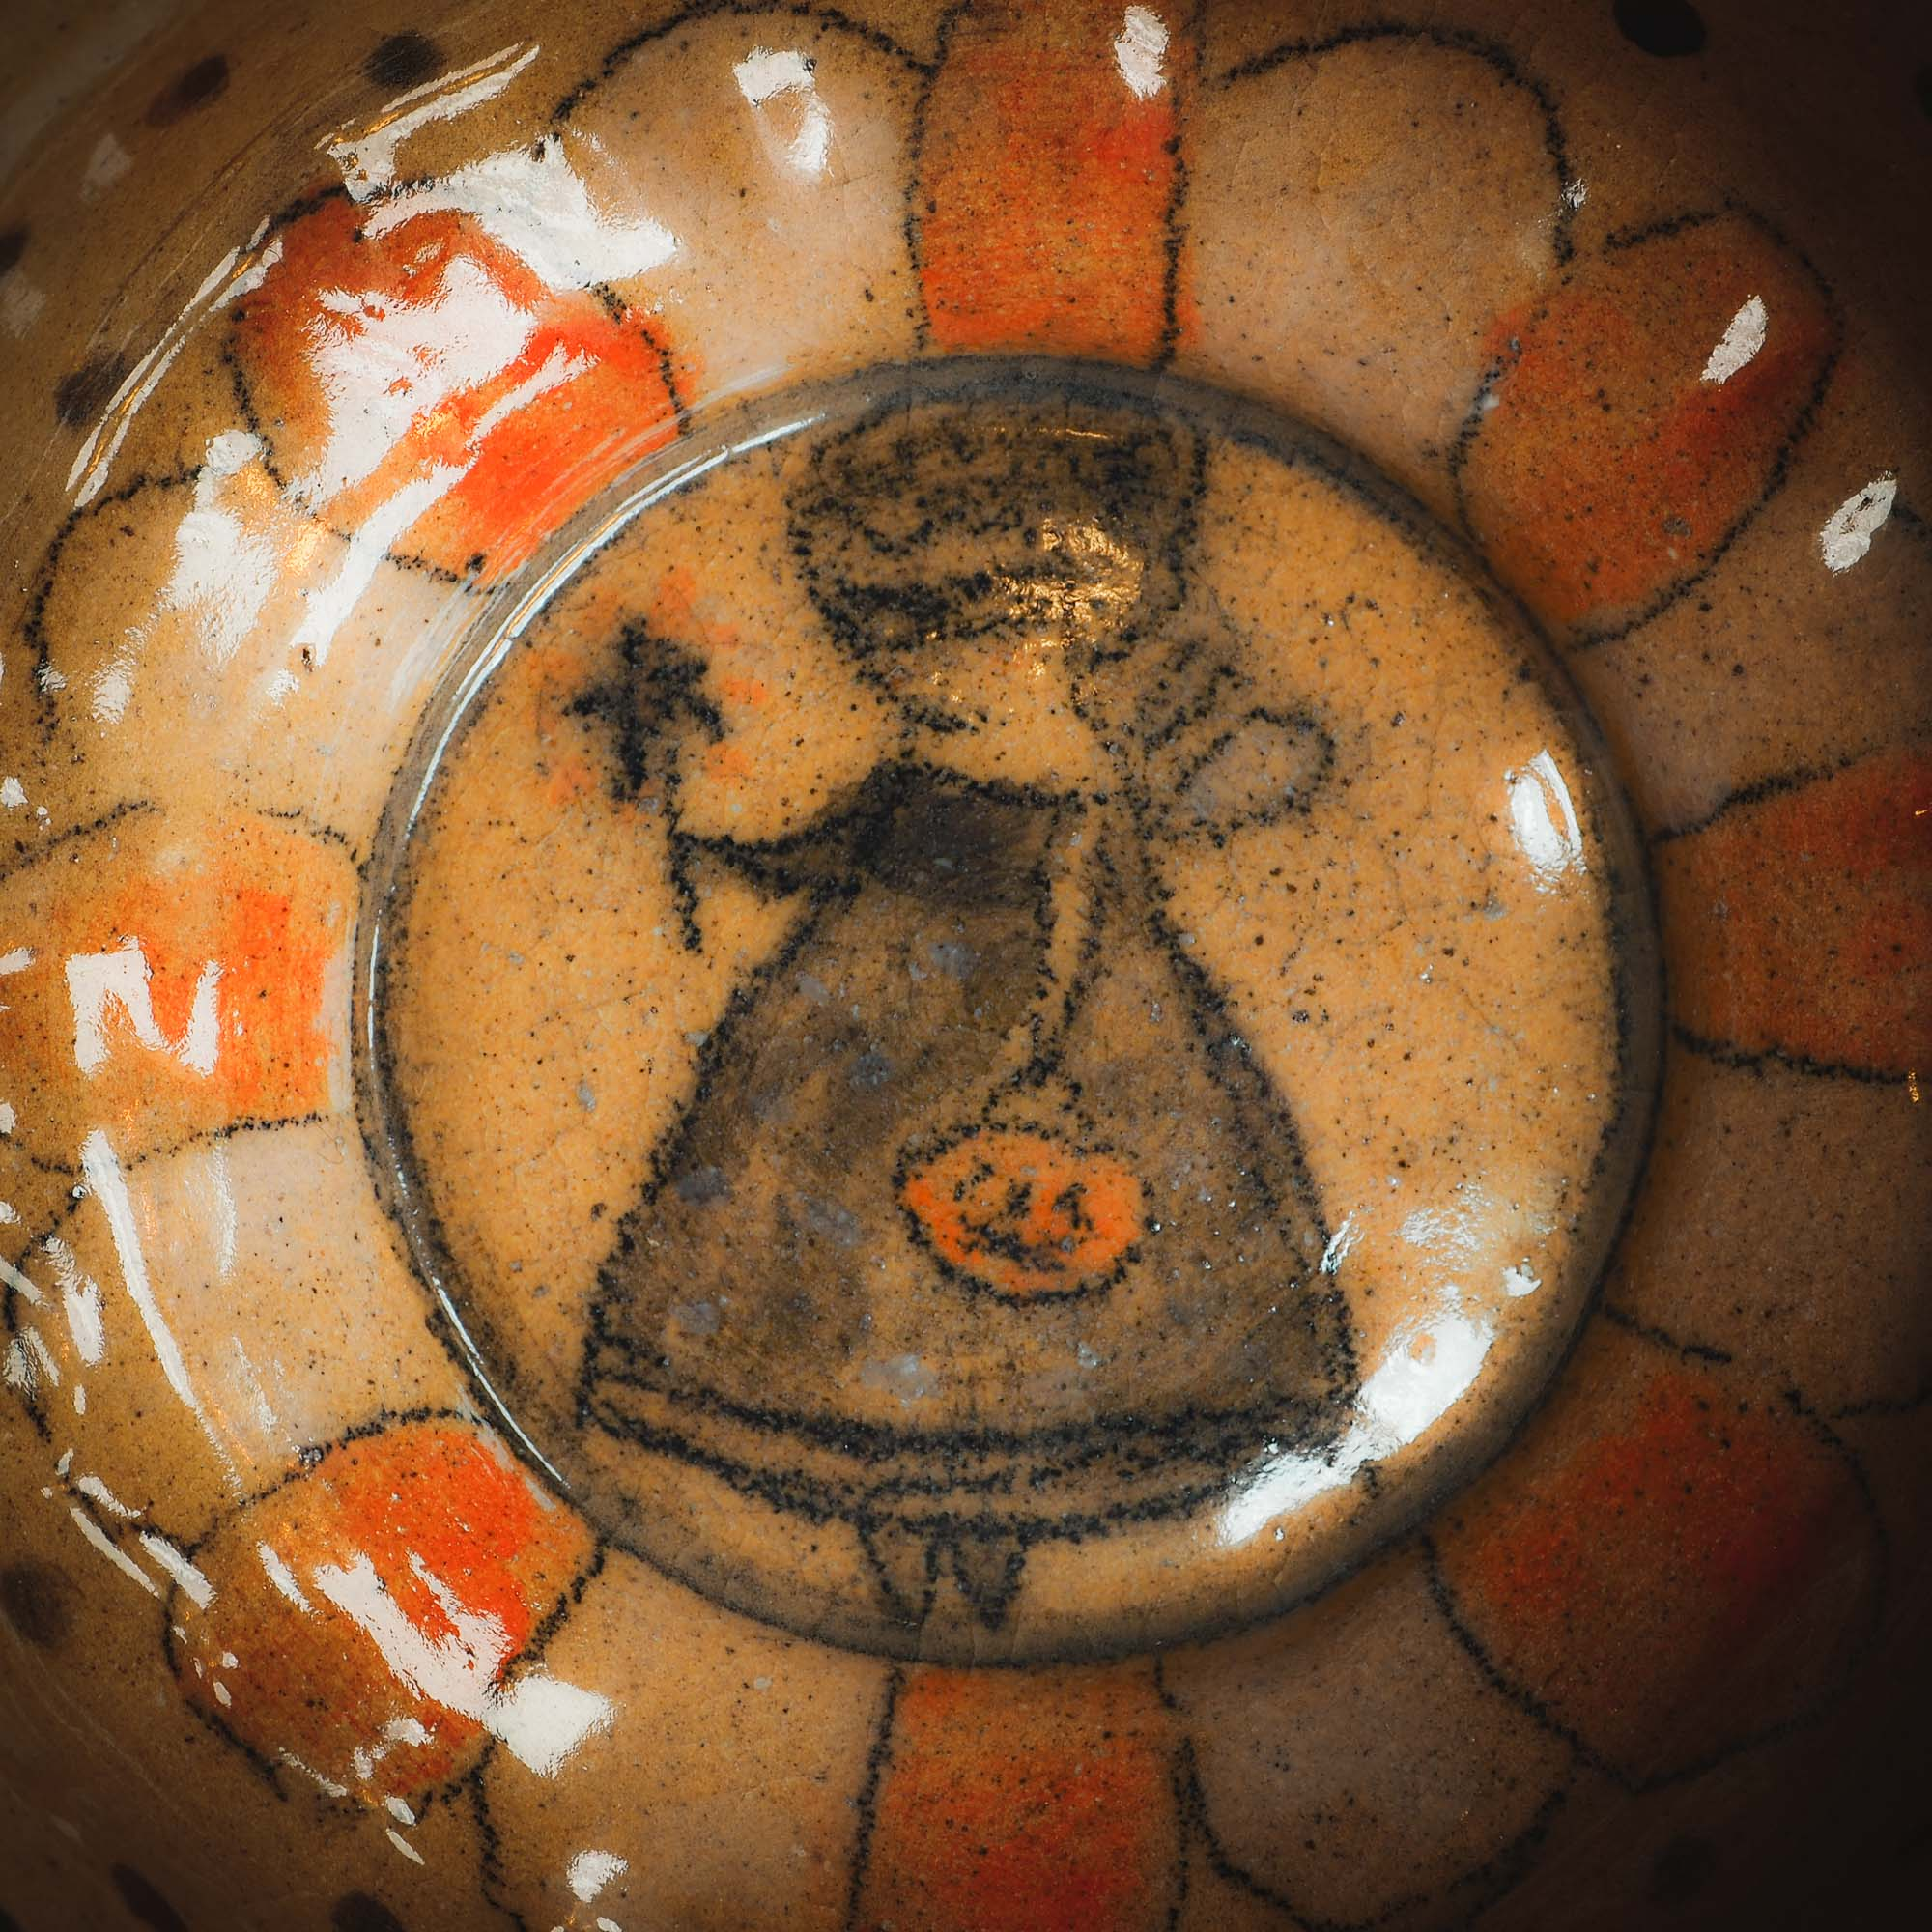 This original handmade Halloween themed glazed ceramic bowl by Idania Salcido, the artist behind Danita Art, features a little Halloween Fairy witch girl is ready to go trick-or-treat on the best holiday of the year. Halloween! You can enjoy your favorite fruits and nuts in it, or maybe a little ice cream ball. Or you can use it to enjoy the candy treasure after going door to door.